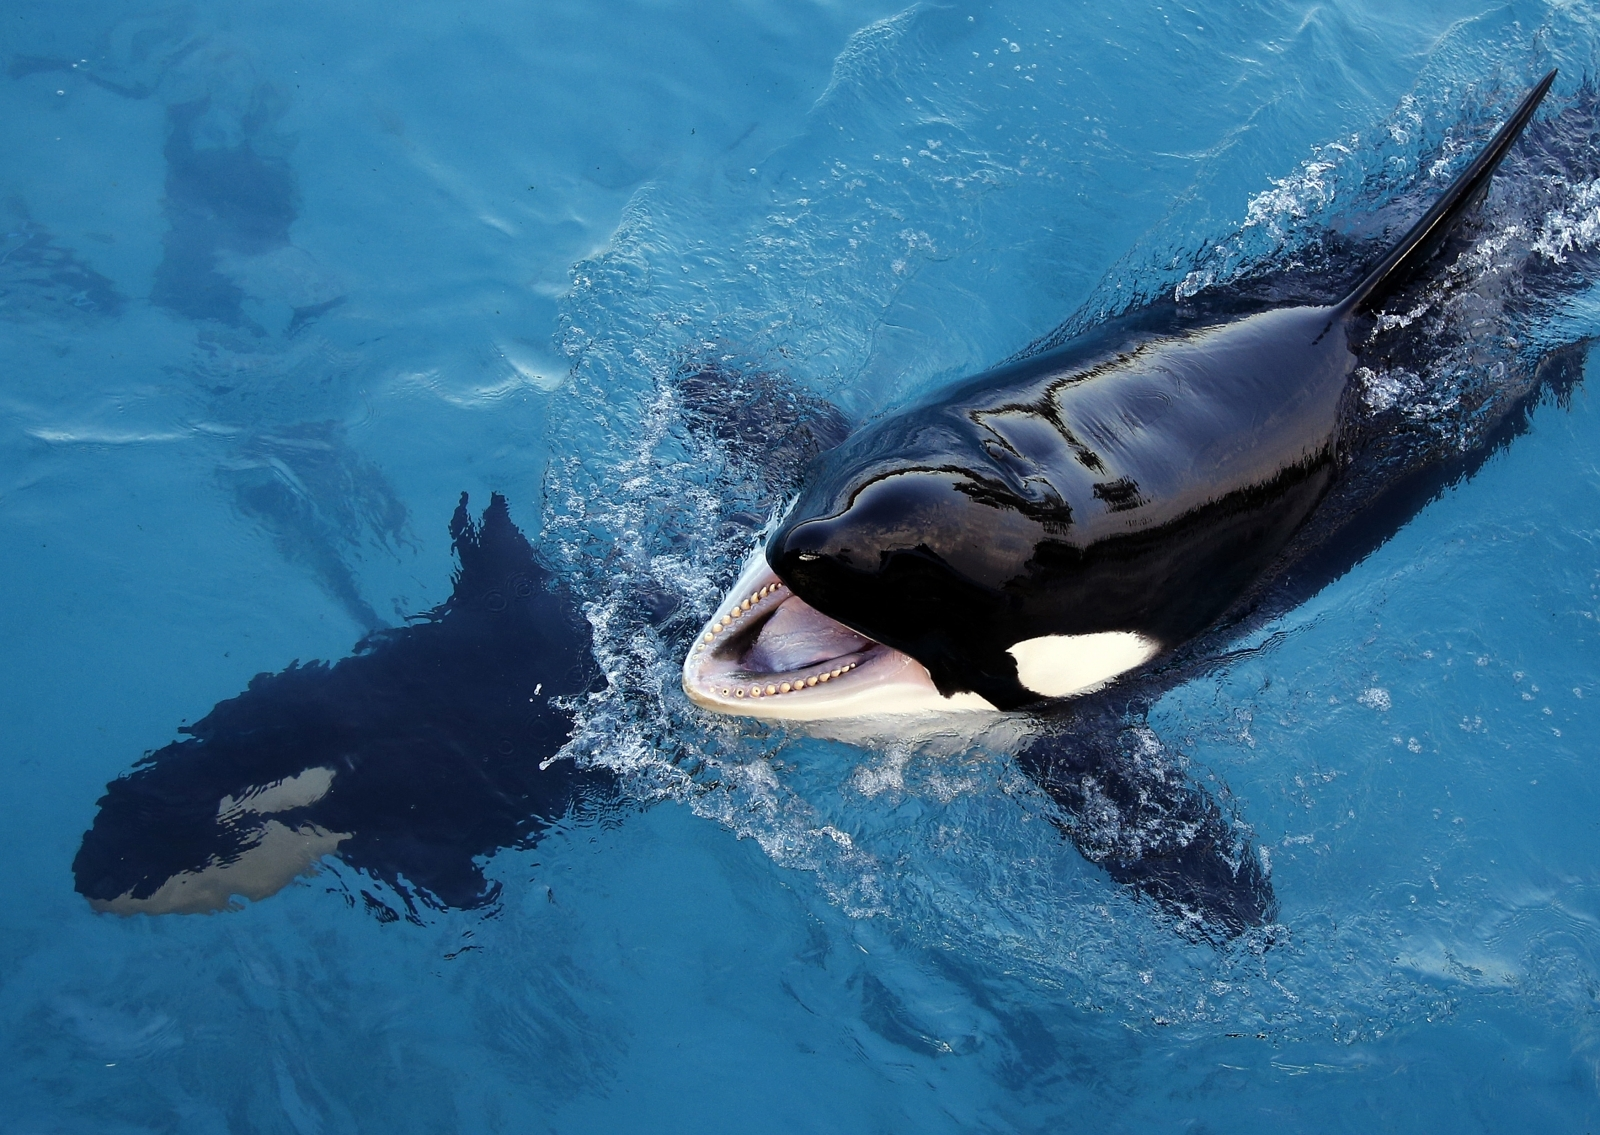 Killer whale is taught how to speak through its blowhole ...